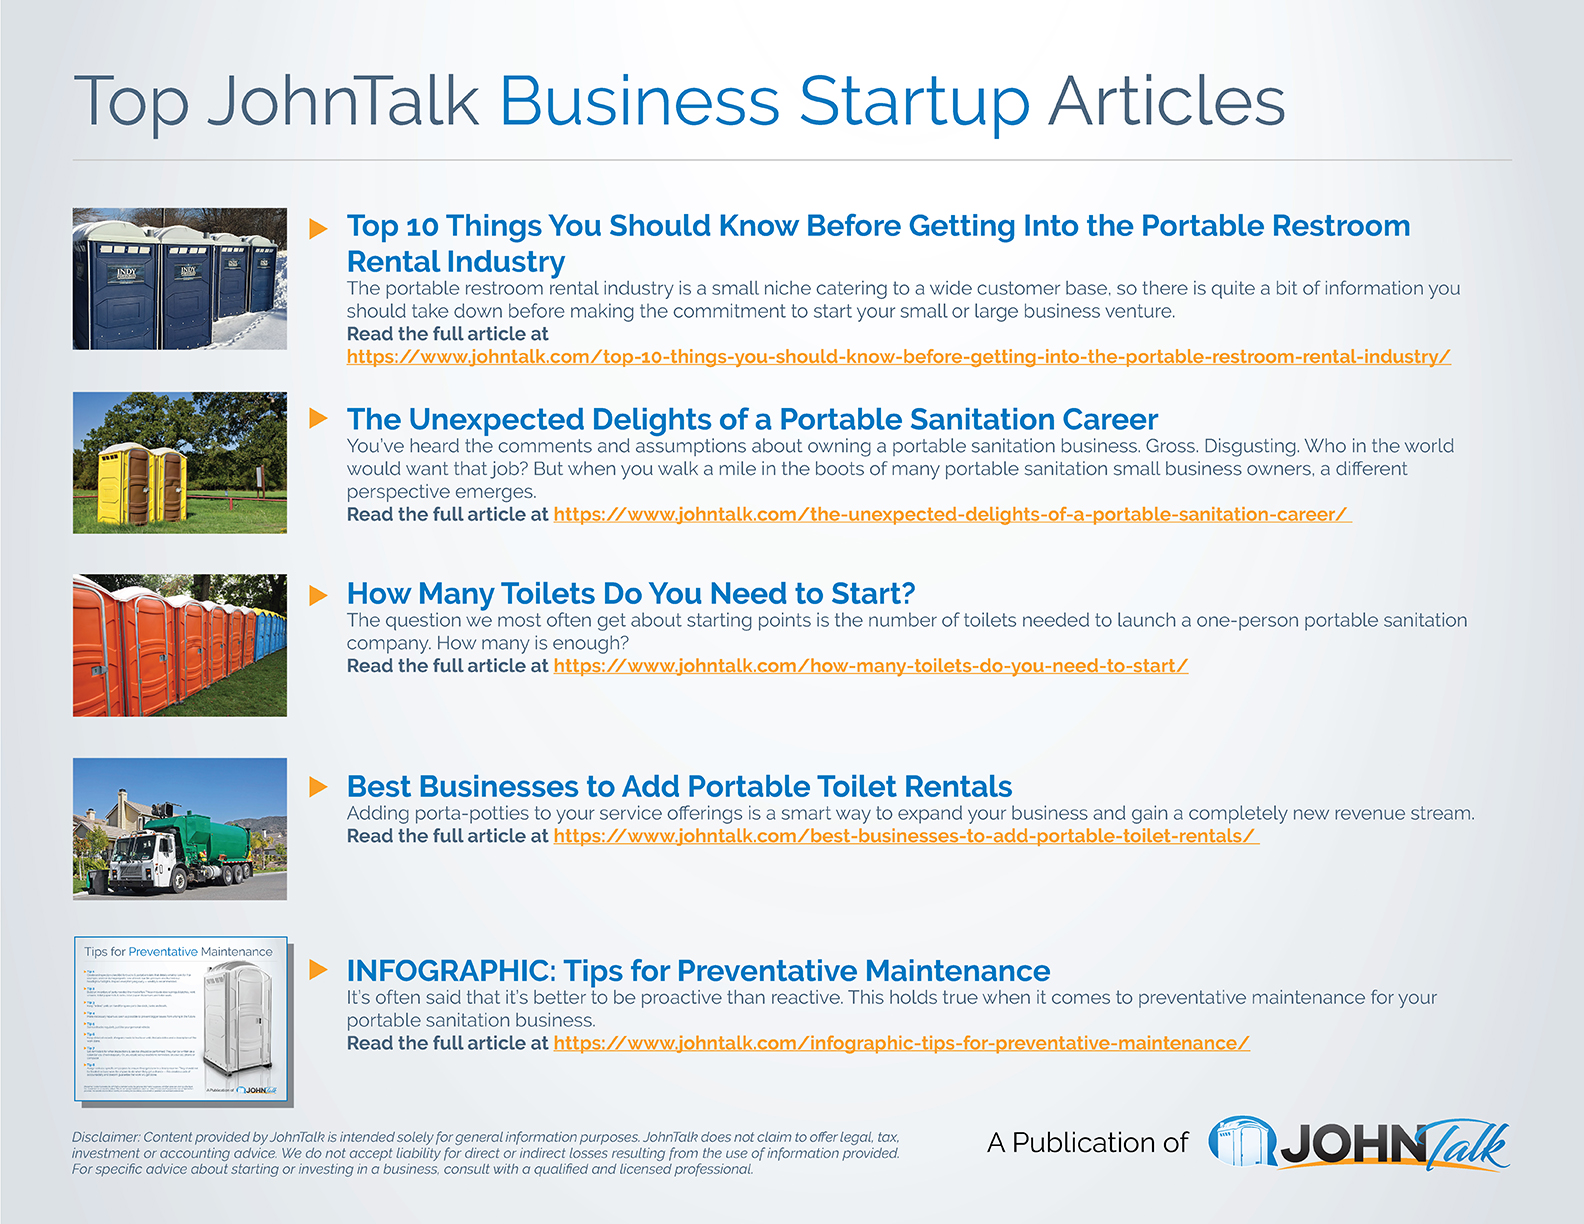 Top JohnTalk Business Startup Articles